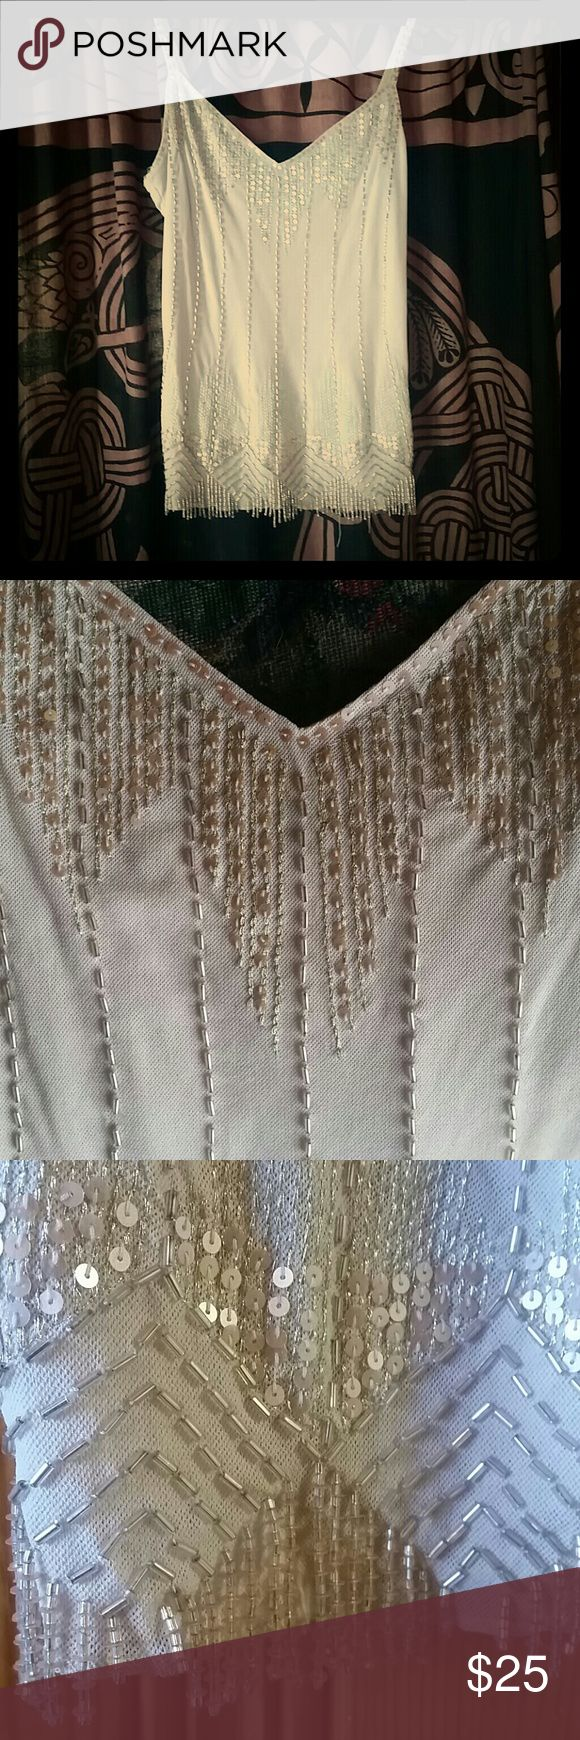 Dressy Beaded Cami Beaded beige cami with hanging beads at bottom, sheer nylon, hand wash. Express Tops Tank Tops